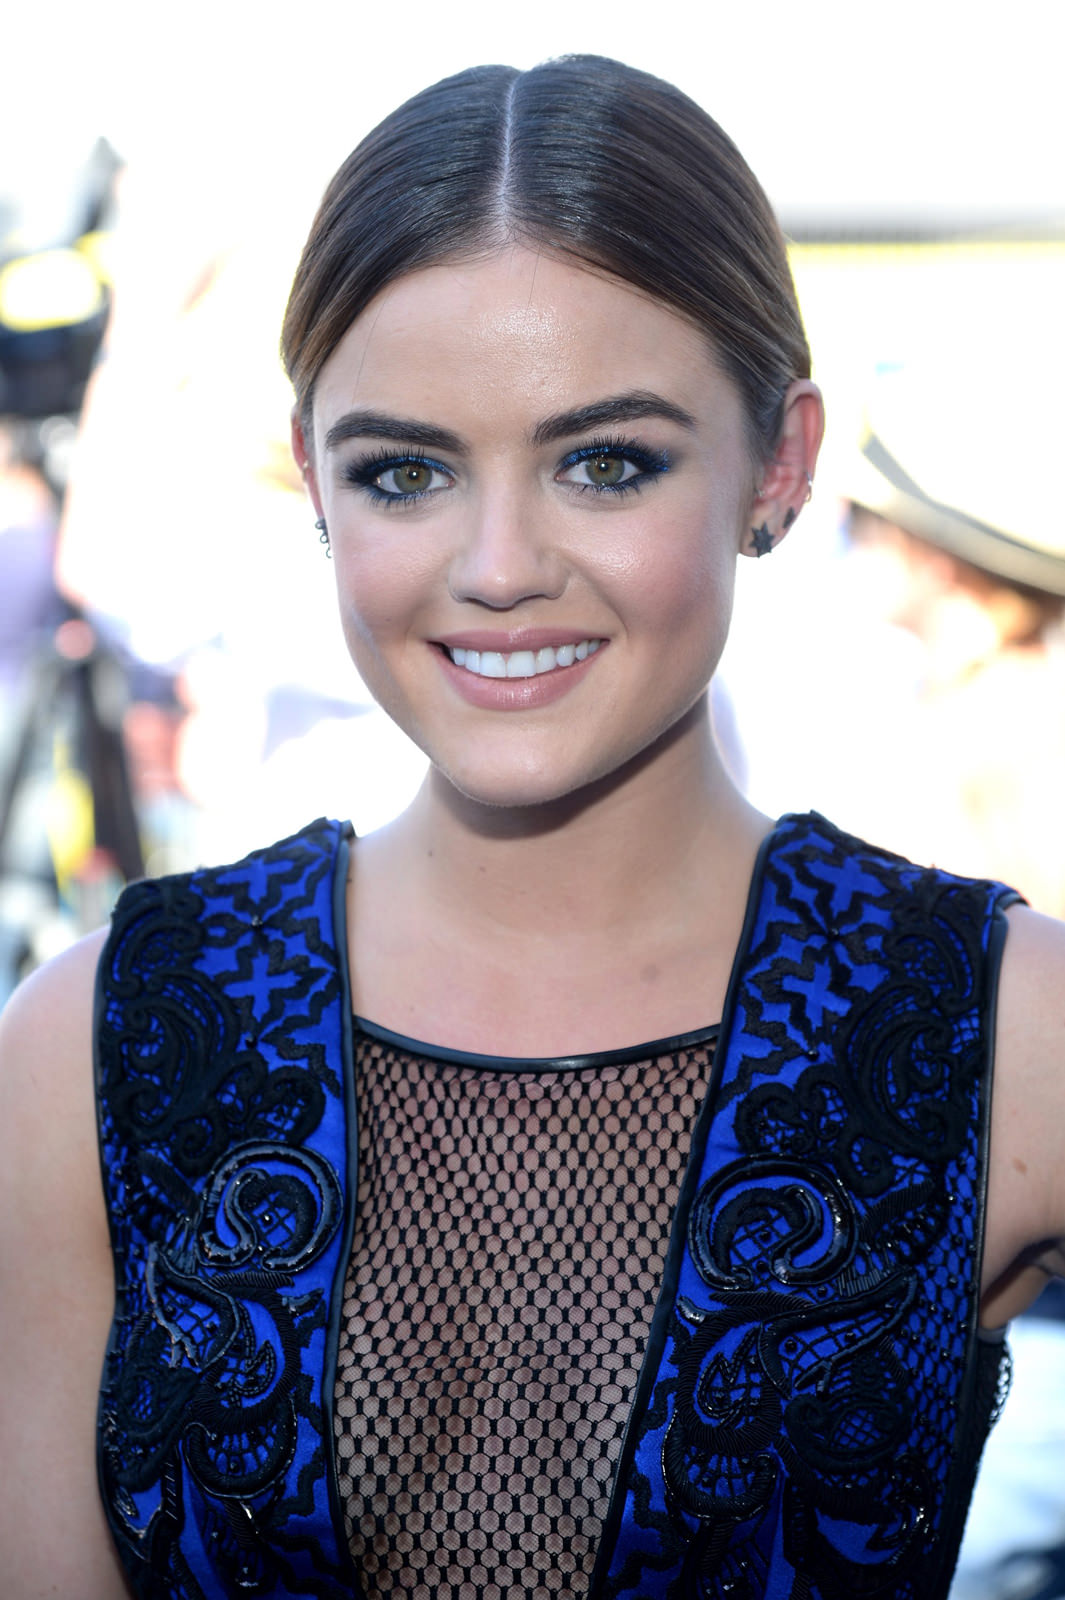 Lucy Hale Photo Gallery